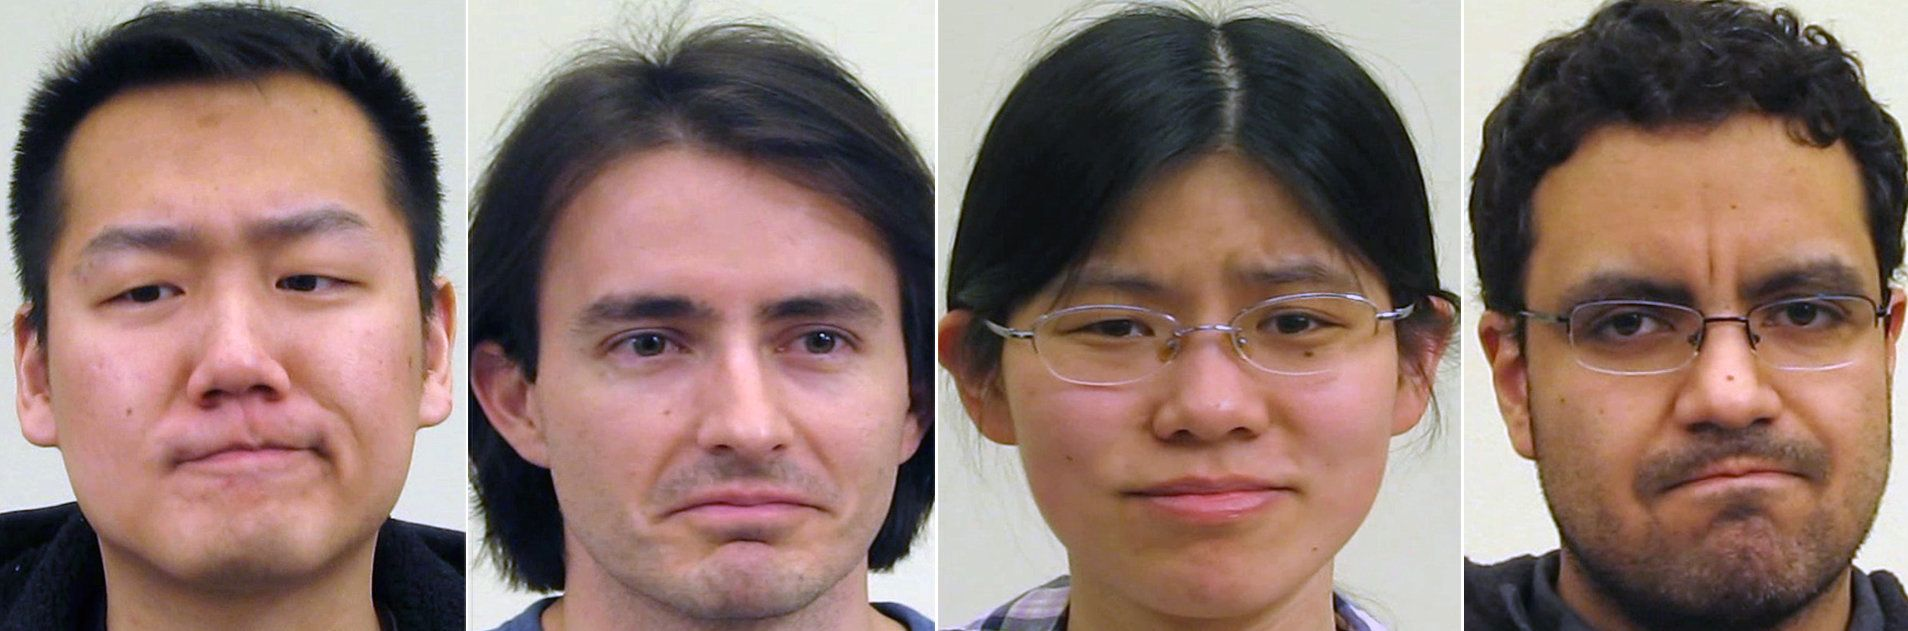 Researchers at Ohio State Universityhave identified this facial expression, which is interpreted across many cultures a